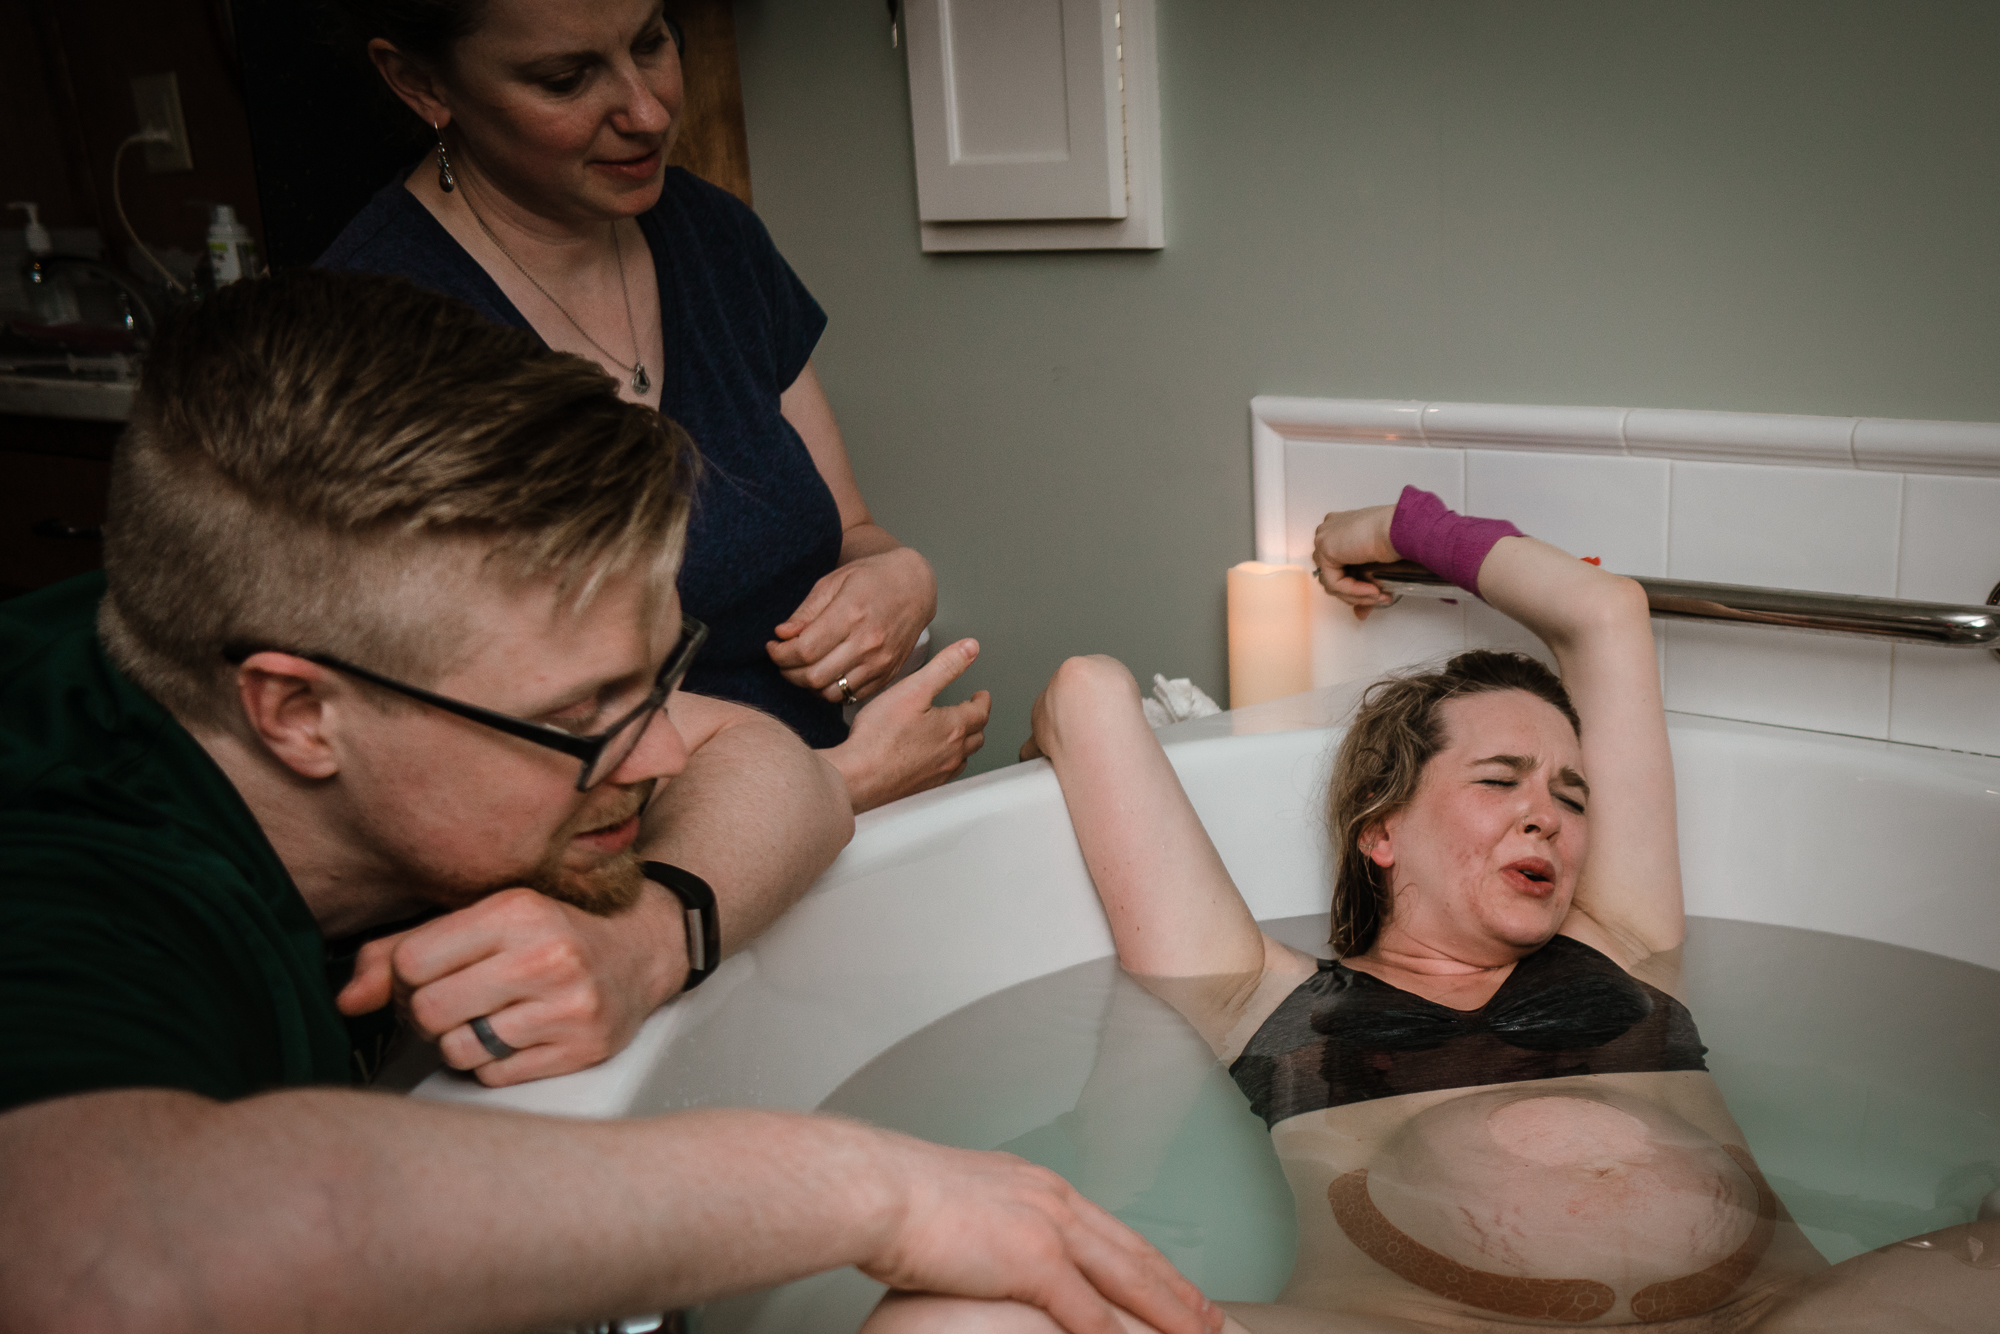 Minnesota Birth Photography by Meredith Westin-June 06, 2019-014725.jpg